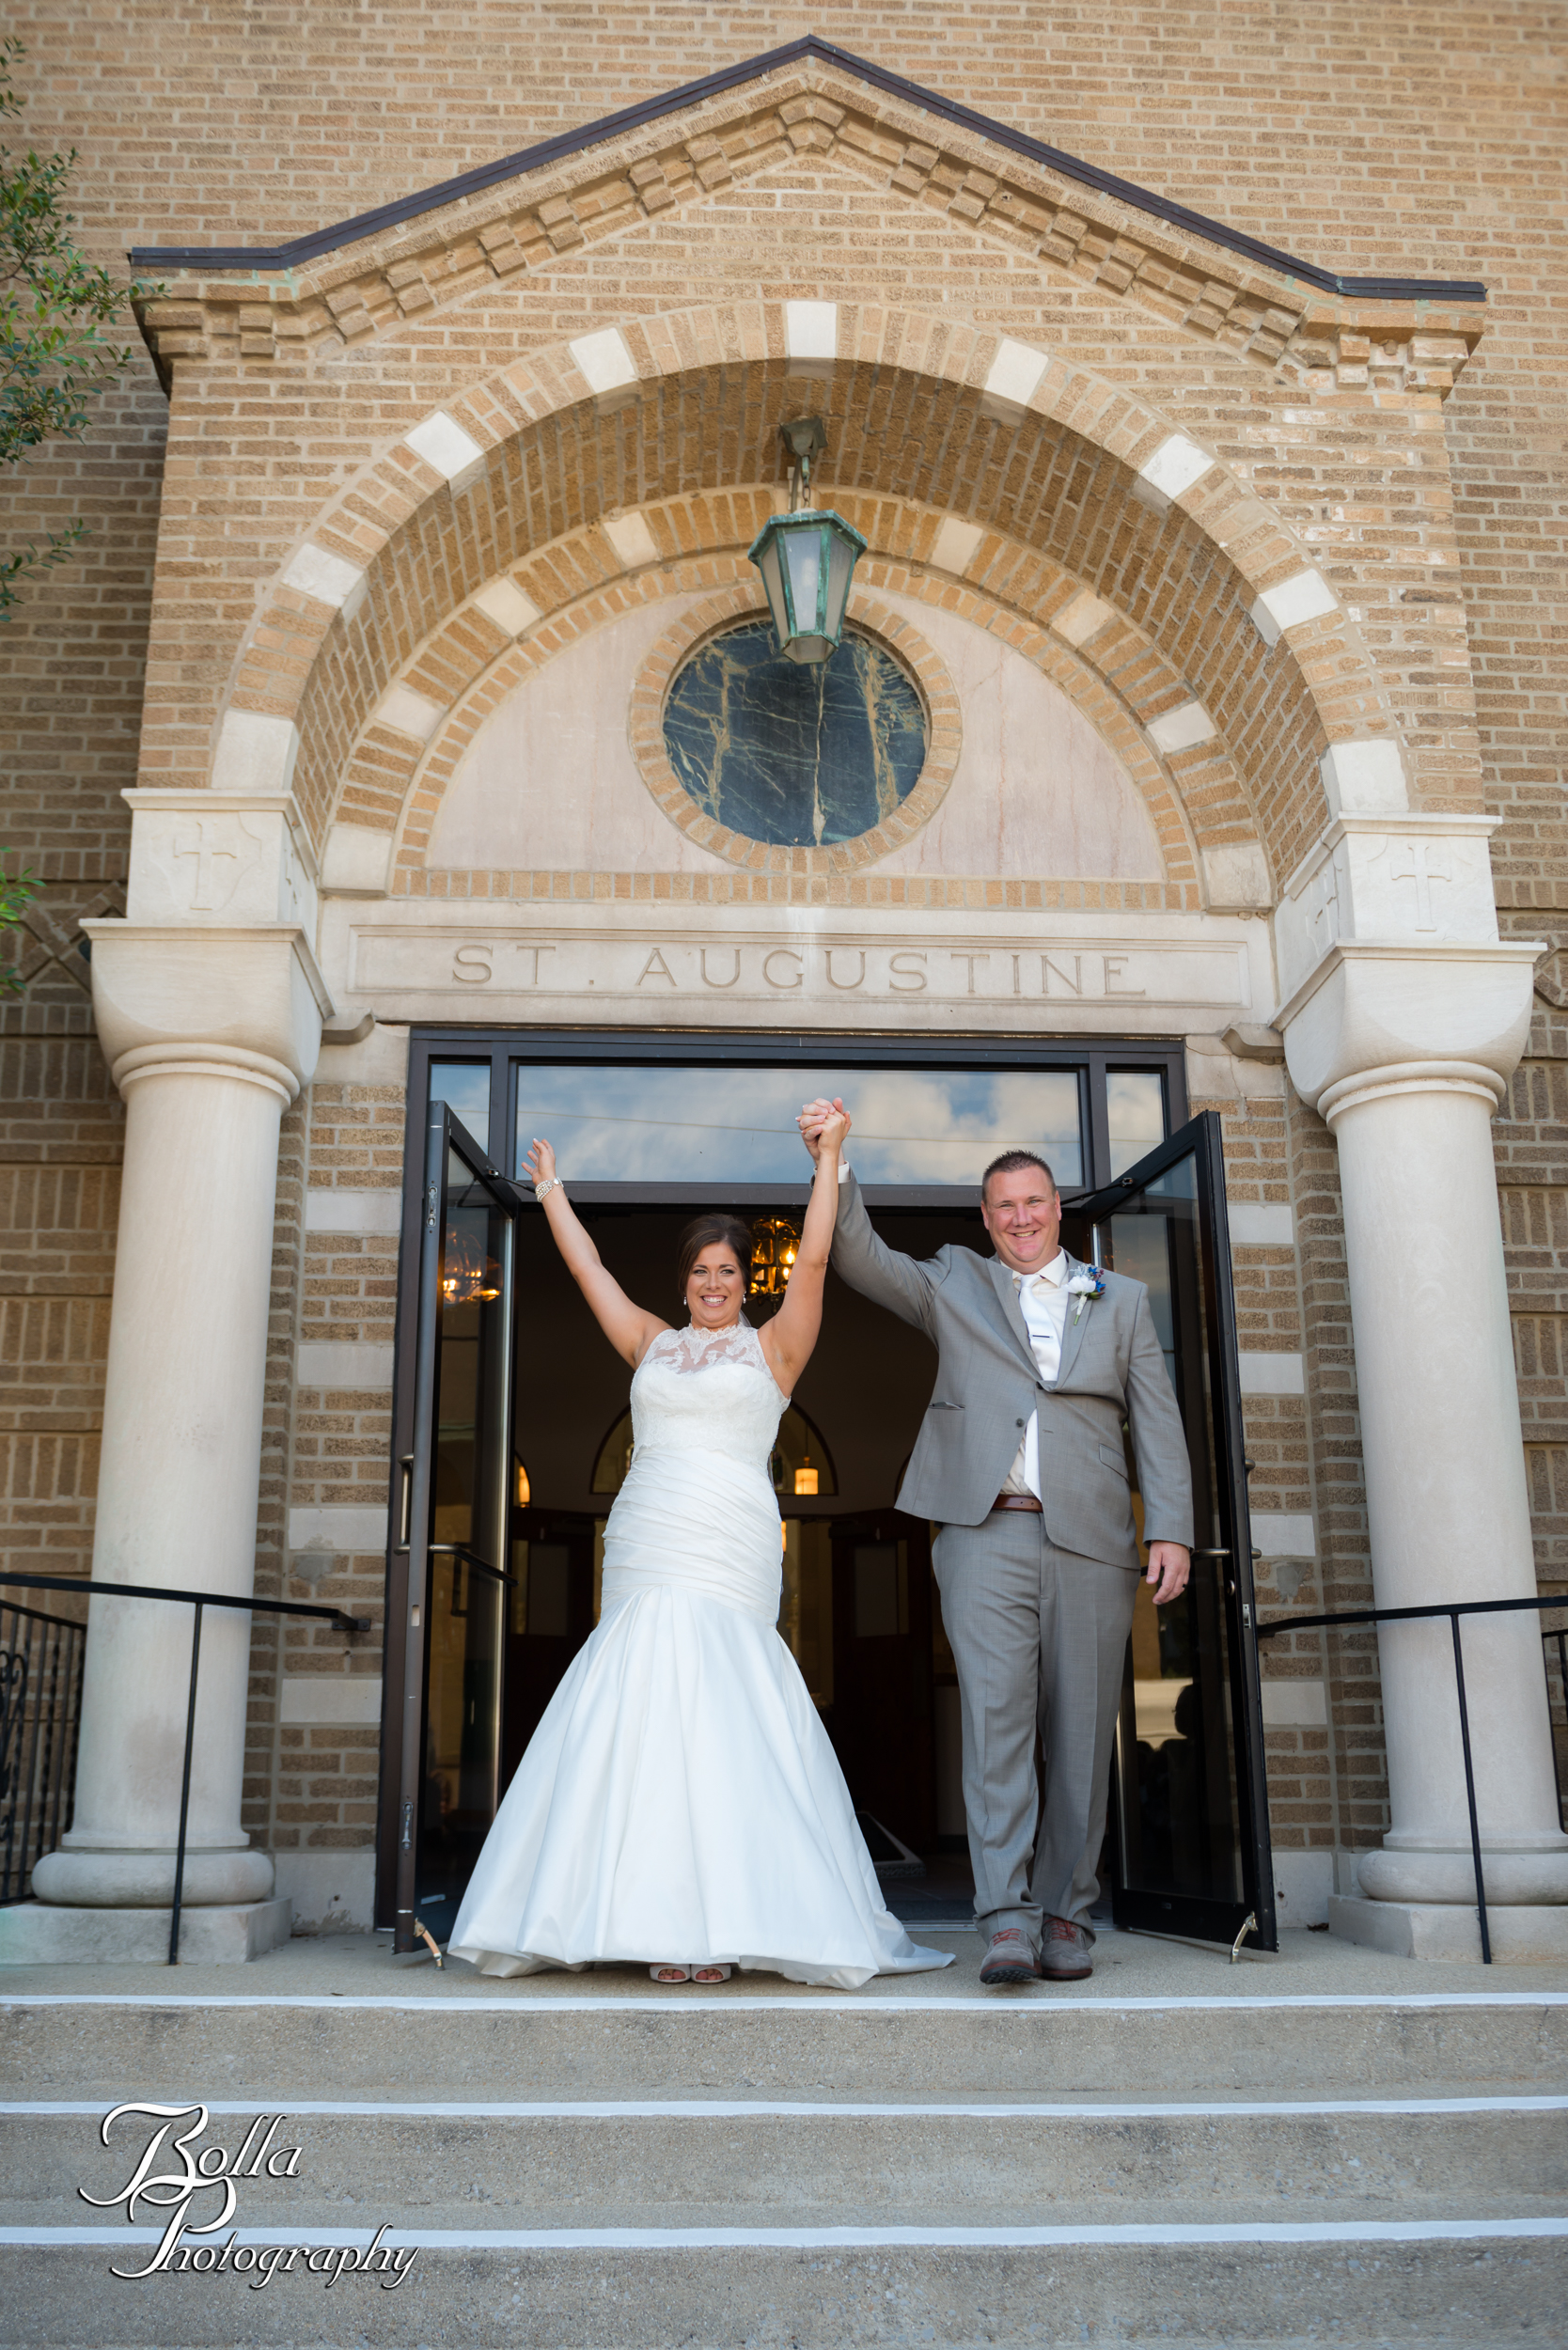 Bolla_photography_edwardsville_wedding_photographer_st_louis_weddings_Heinzmann-0257.jpg